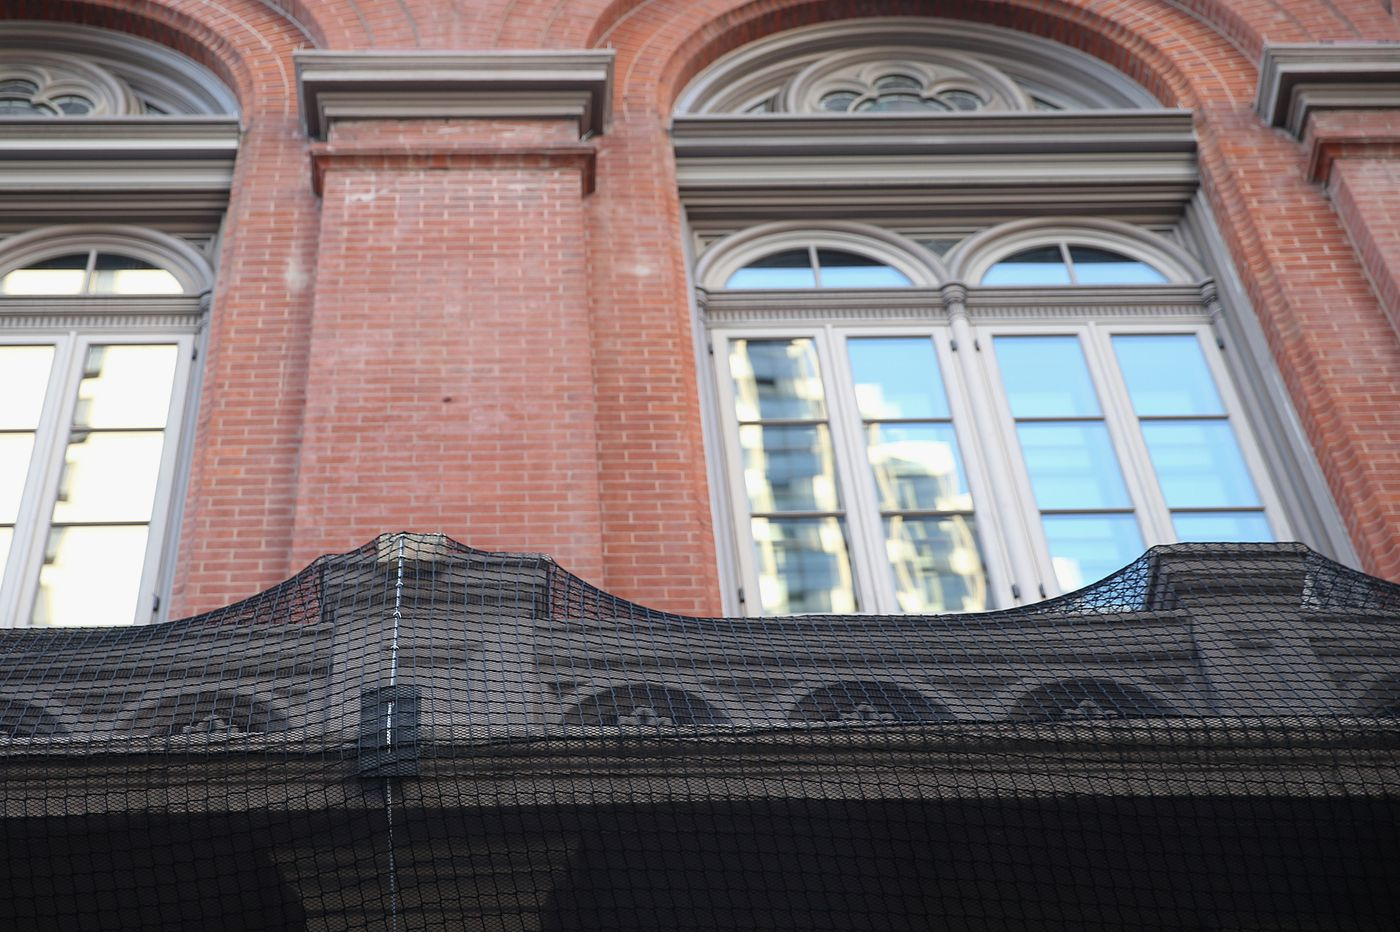 At Academy of Music, the sky is 'spalling': Netting now in place to protect patrons and passersby